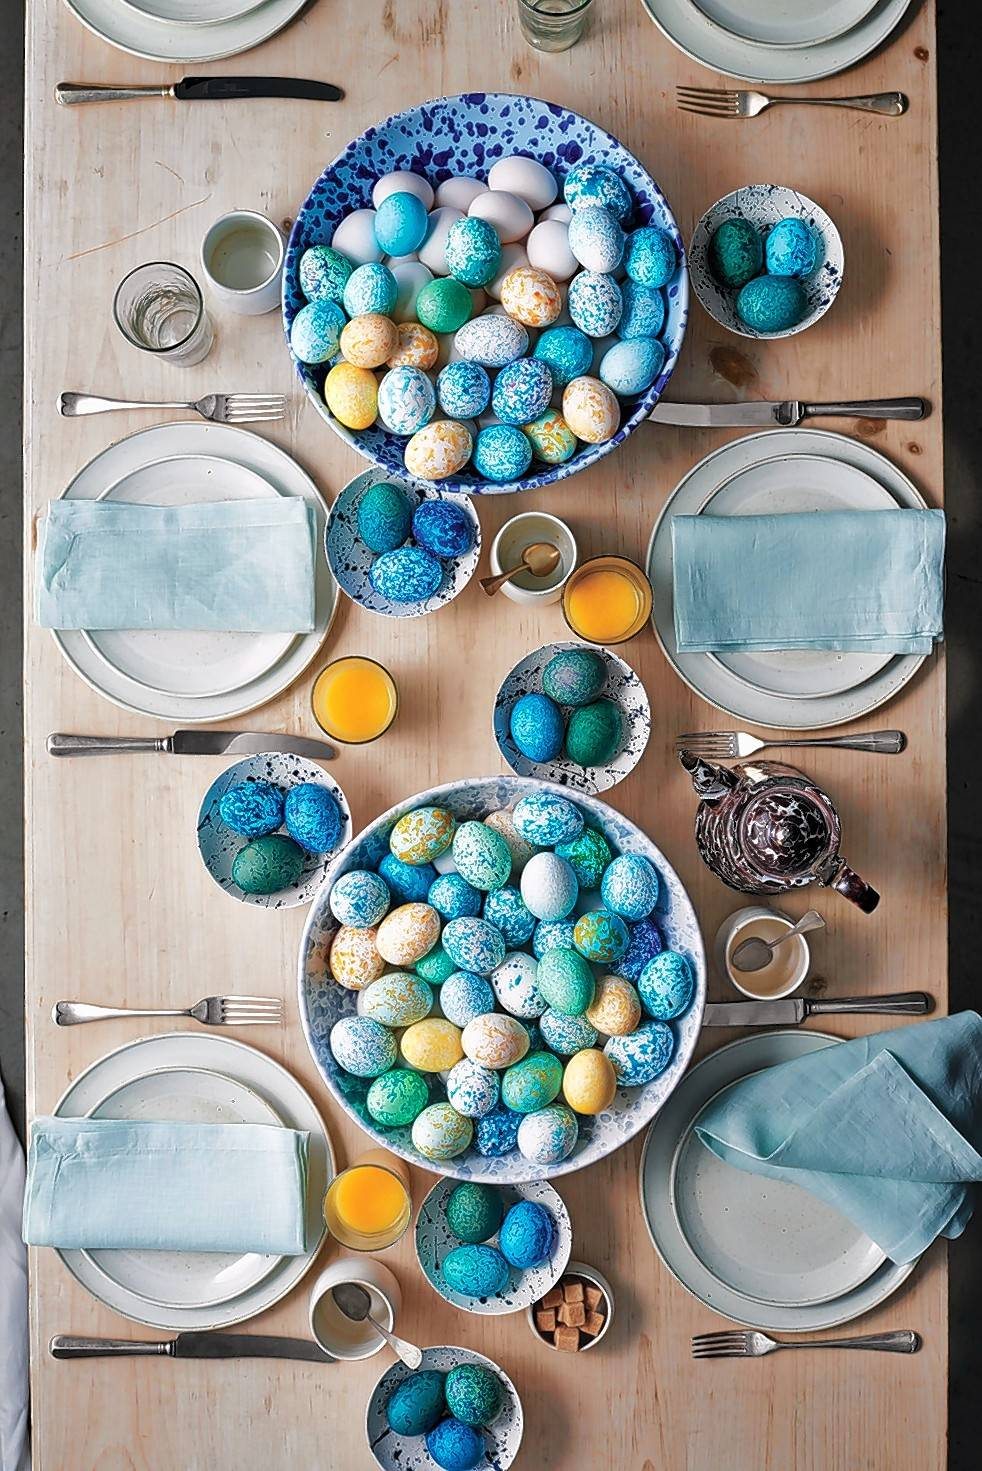 A speckled egg table setting featured in the March issue of Martha Stewart Living shows off & Martha Stewart on Easter paper napkins and serving takeout